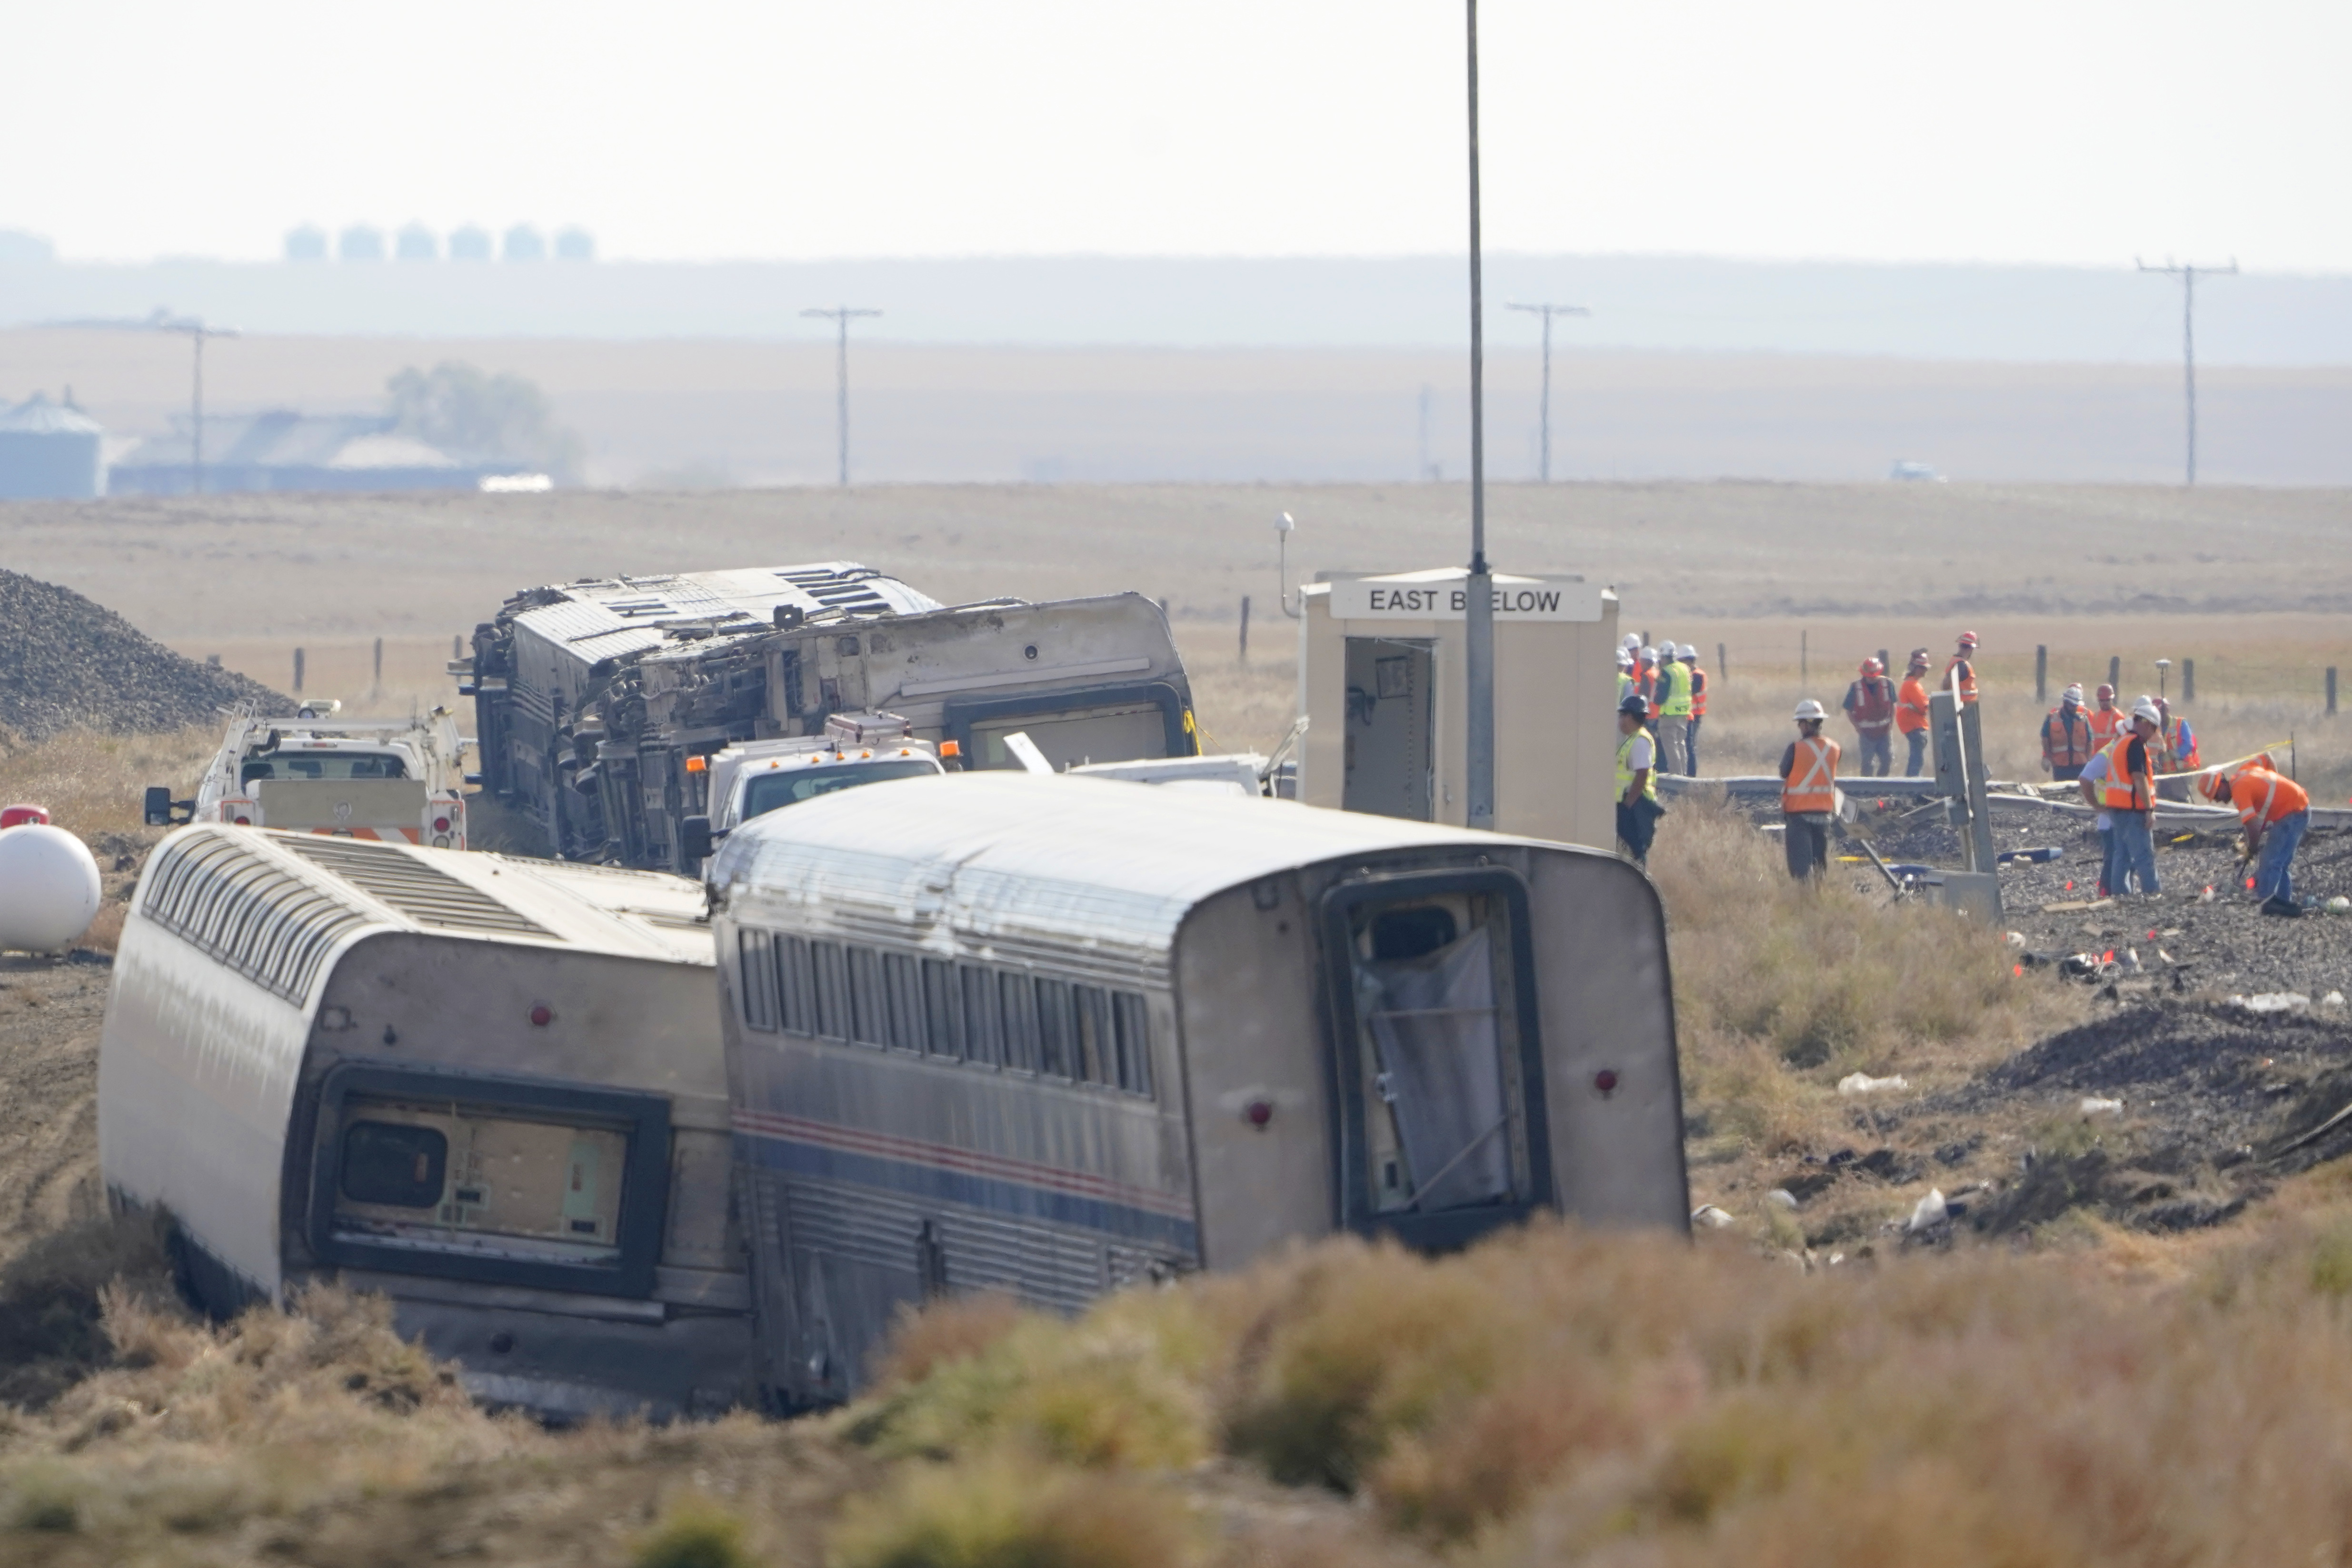 workers stand near train tracks next to overturned cars from an Amtrak train that derailed near Joplin, Mont.